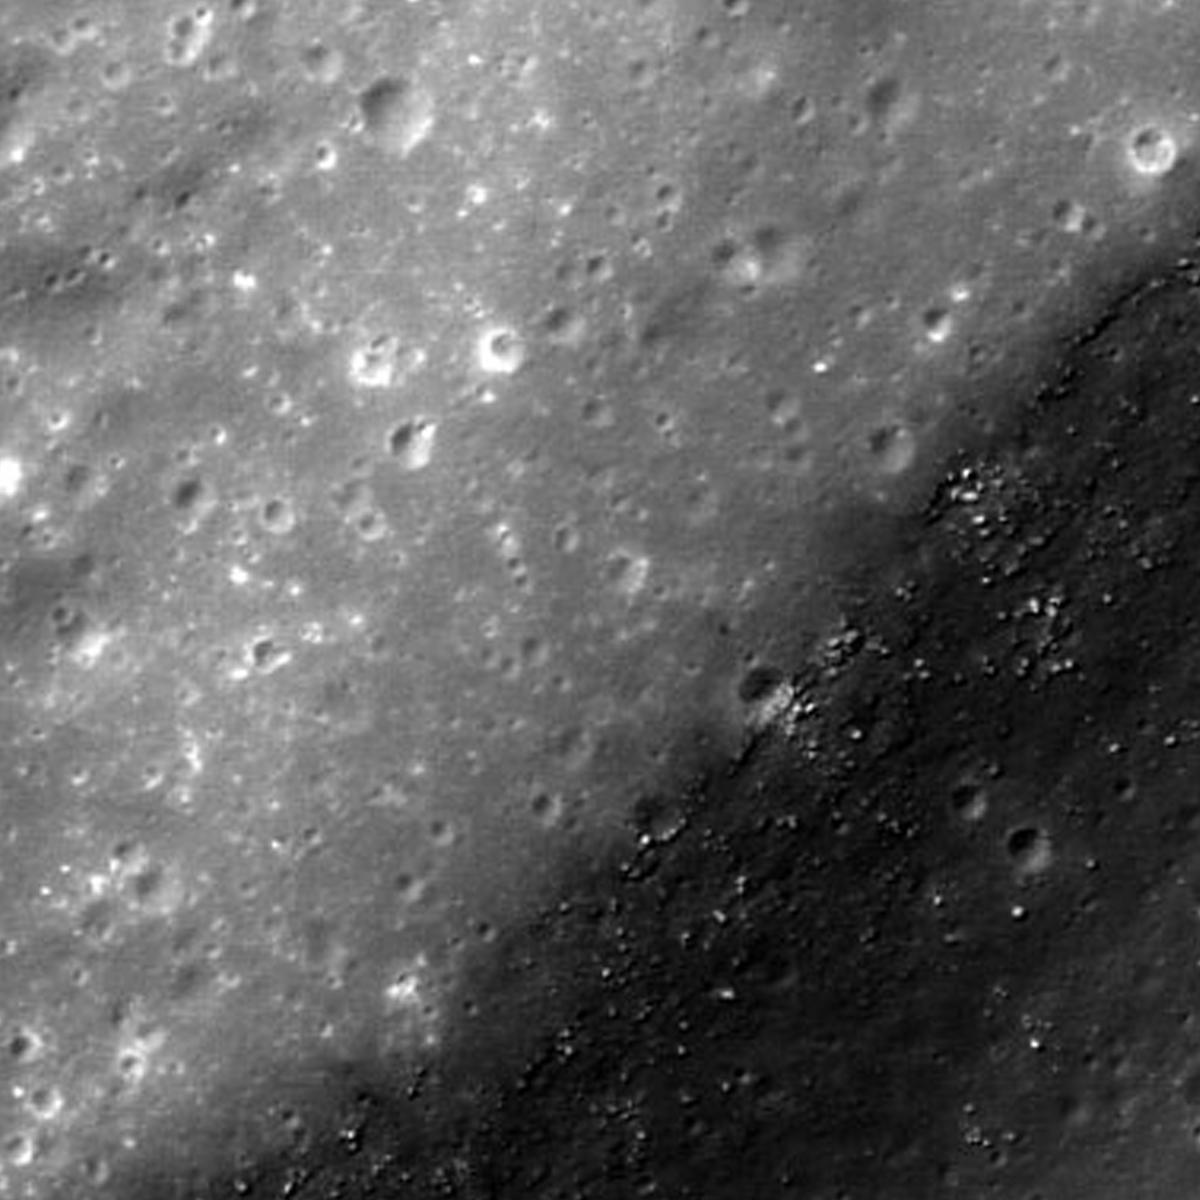 NASA image of the Kopff Crater in the moon's Orientale Basin